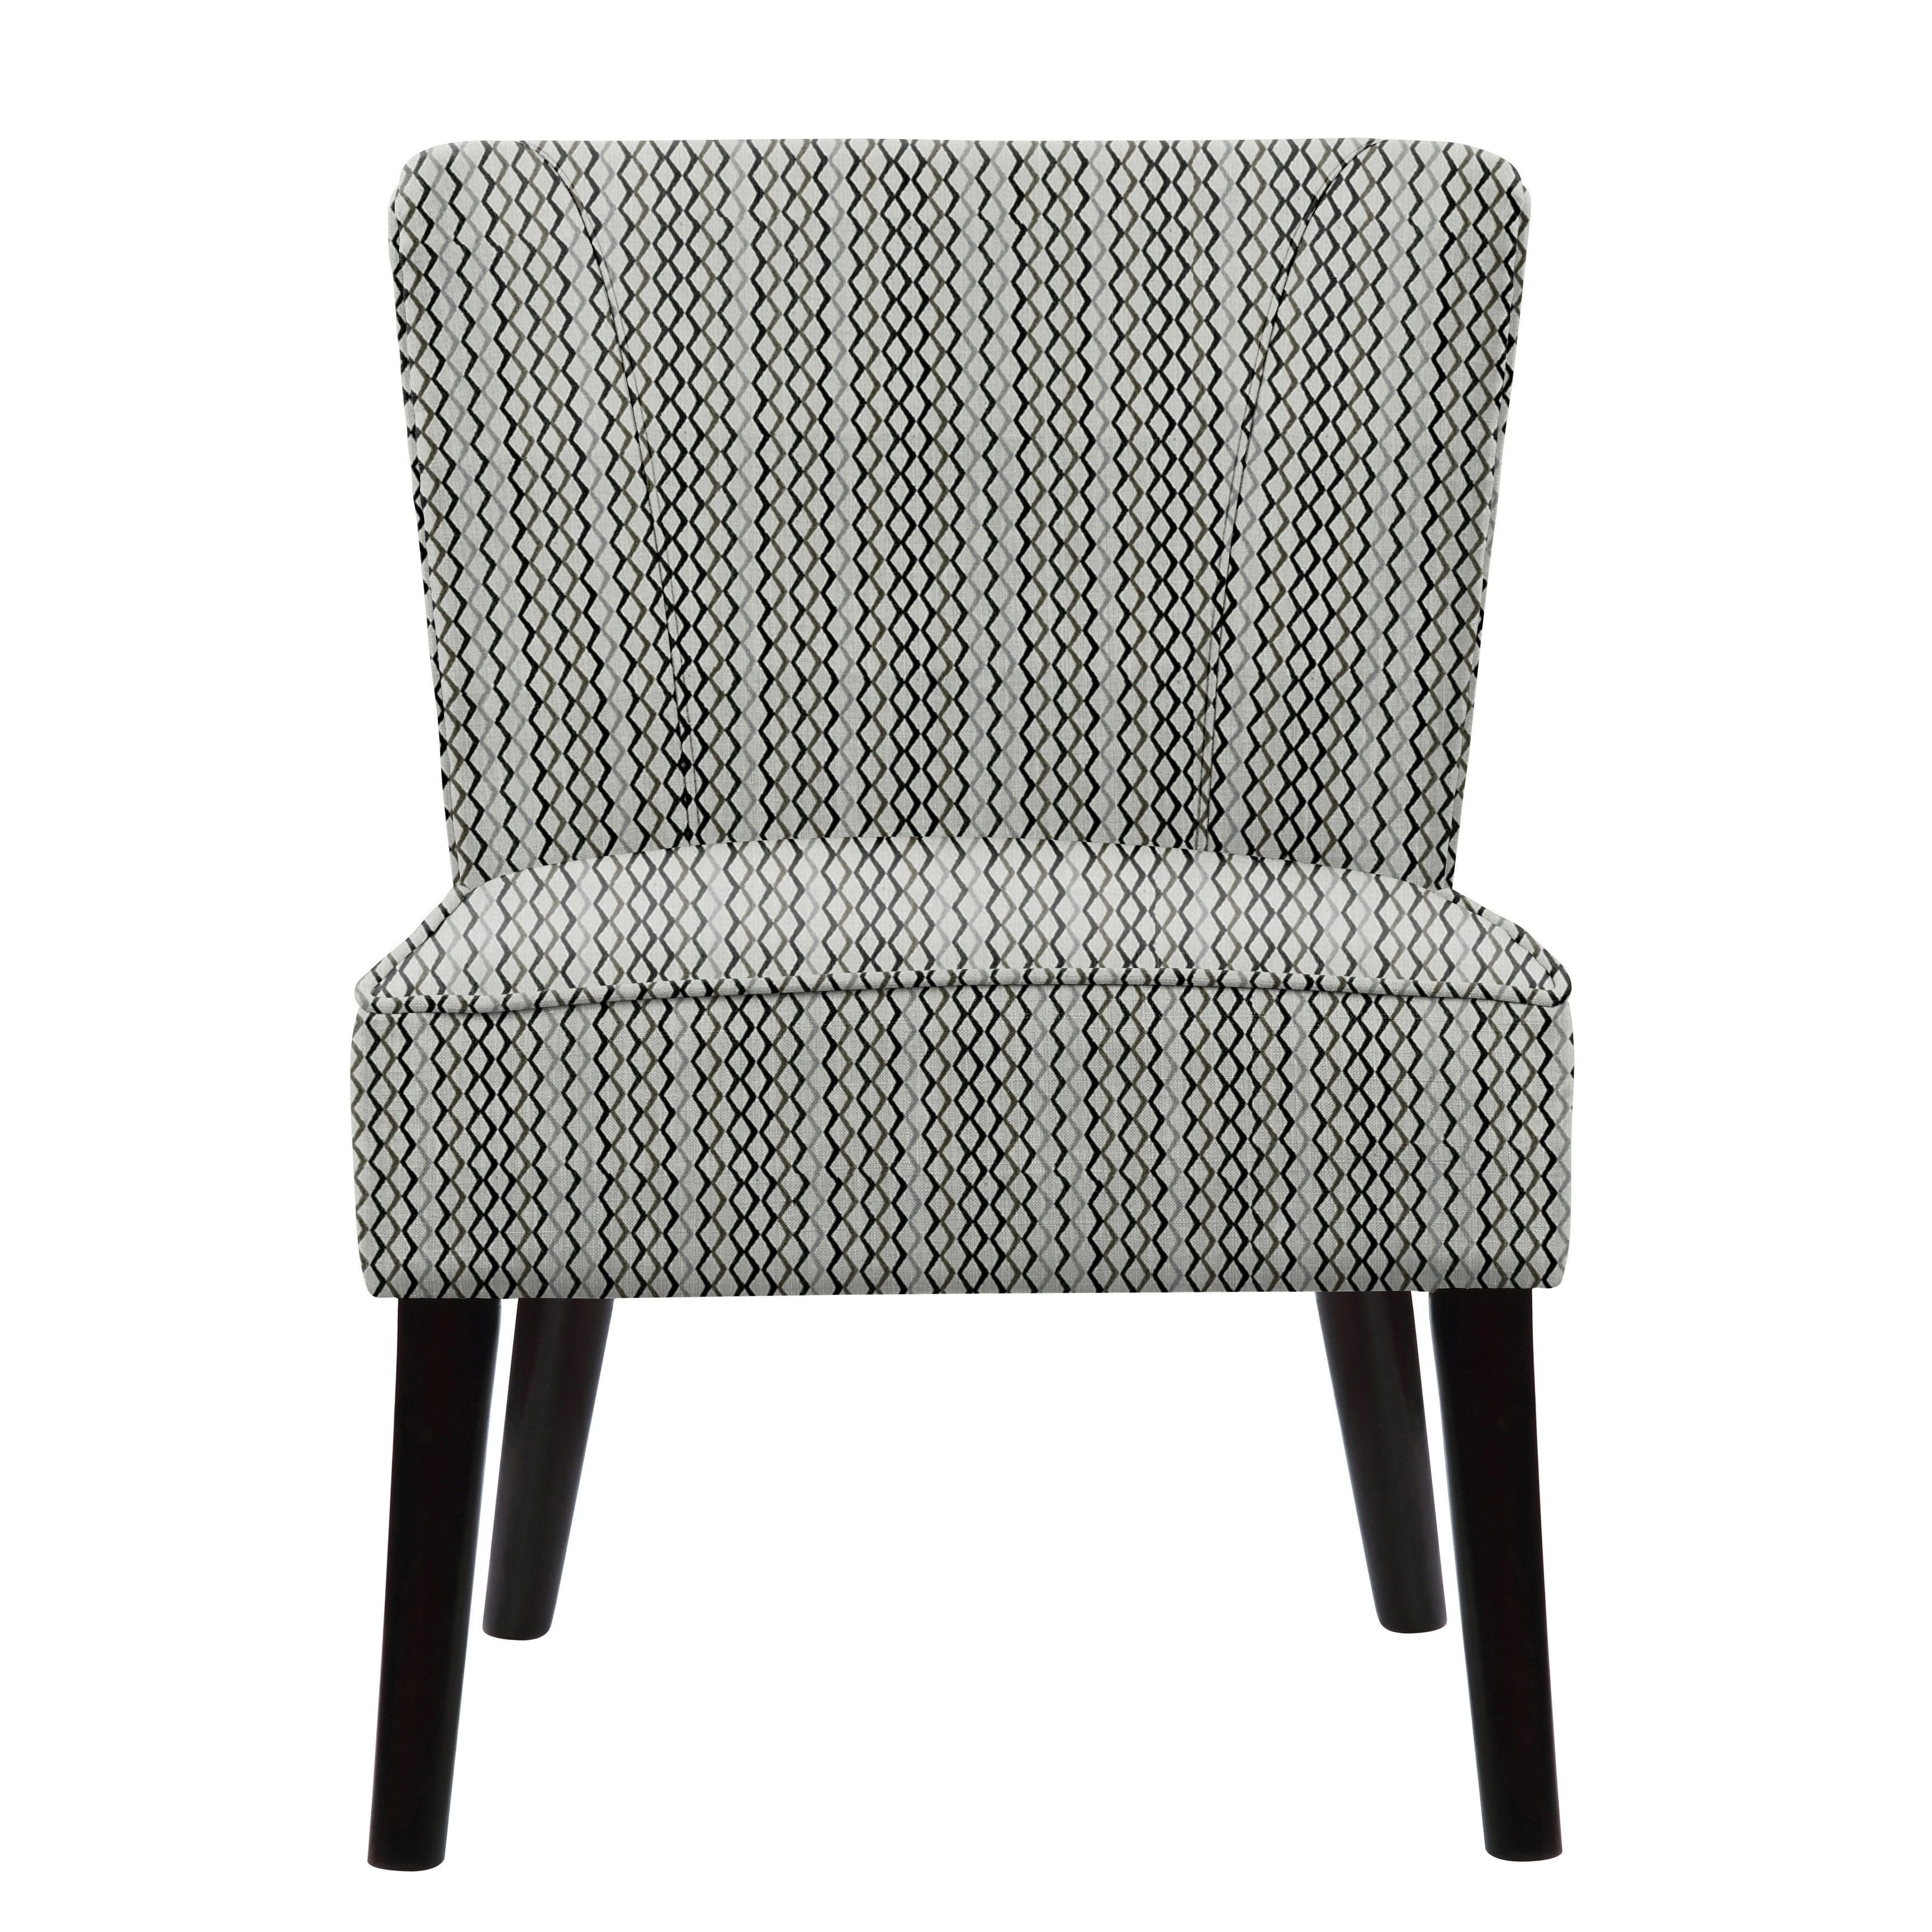 Super Gabriela Accent Chair With Zerox Fabric 663 Beige Grey Short Links Chair Design For Home Short Linksinfo